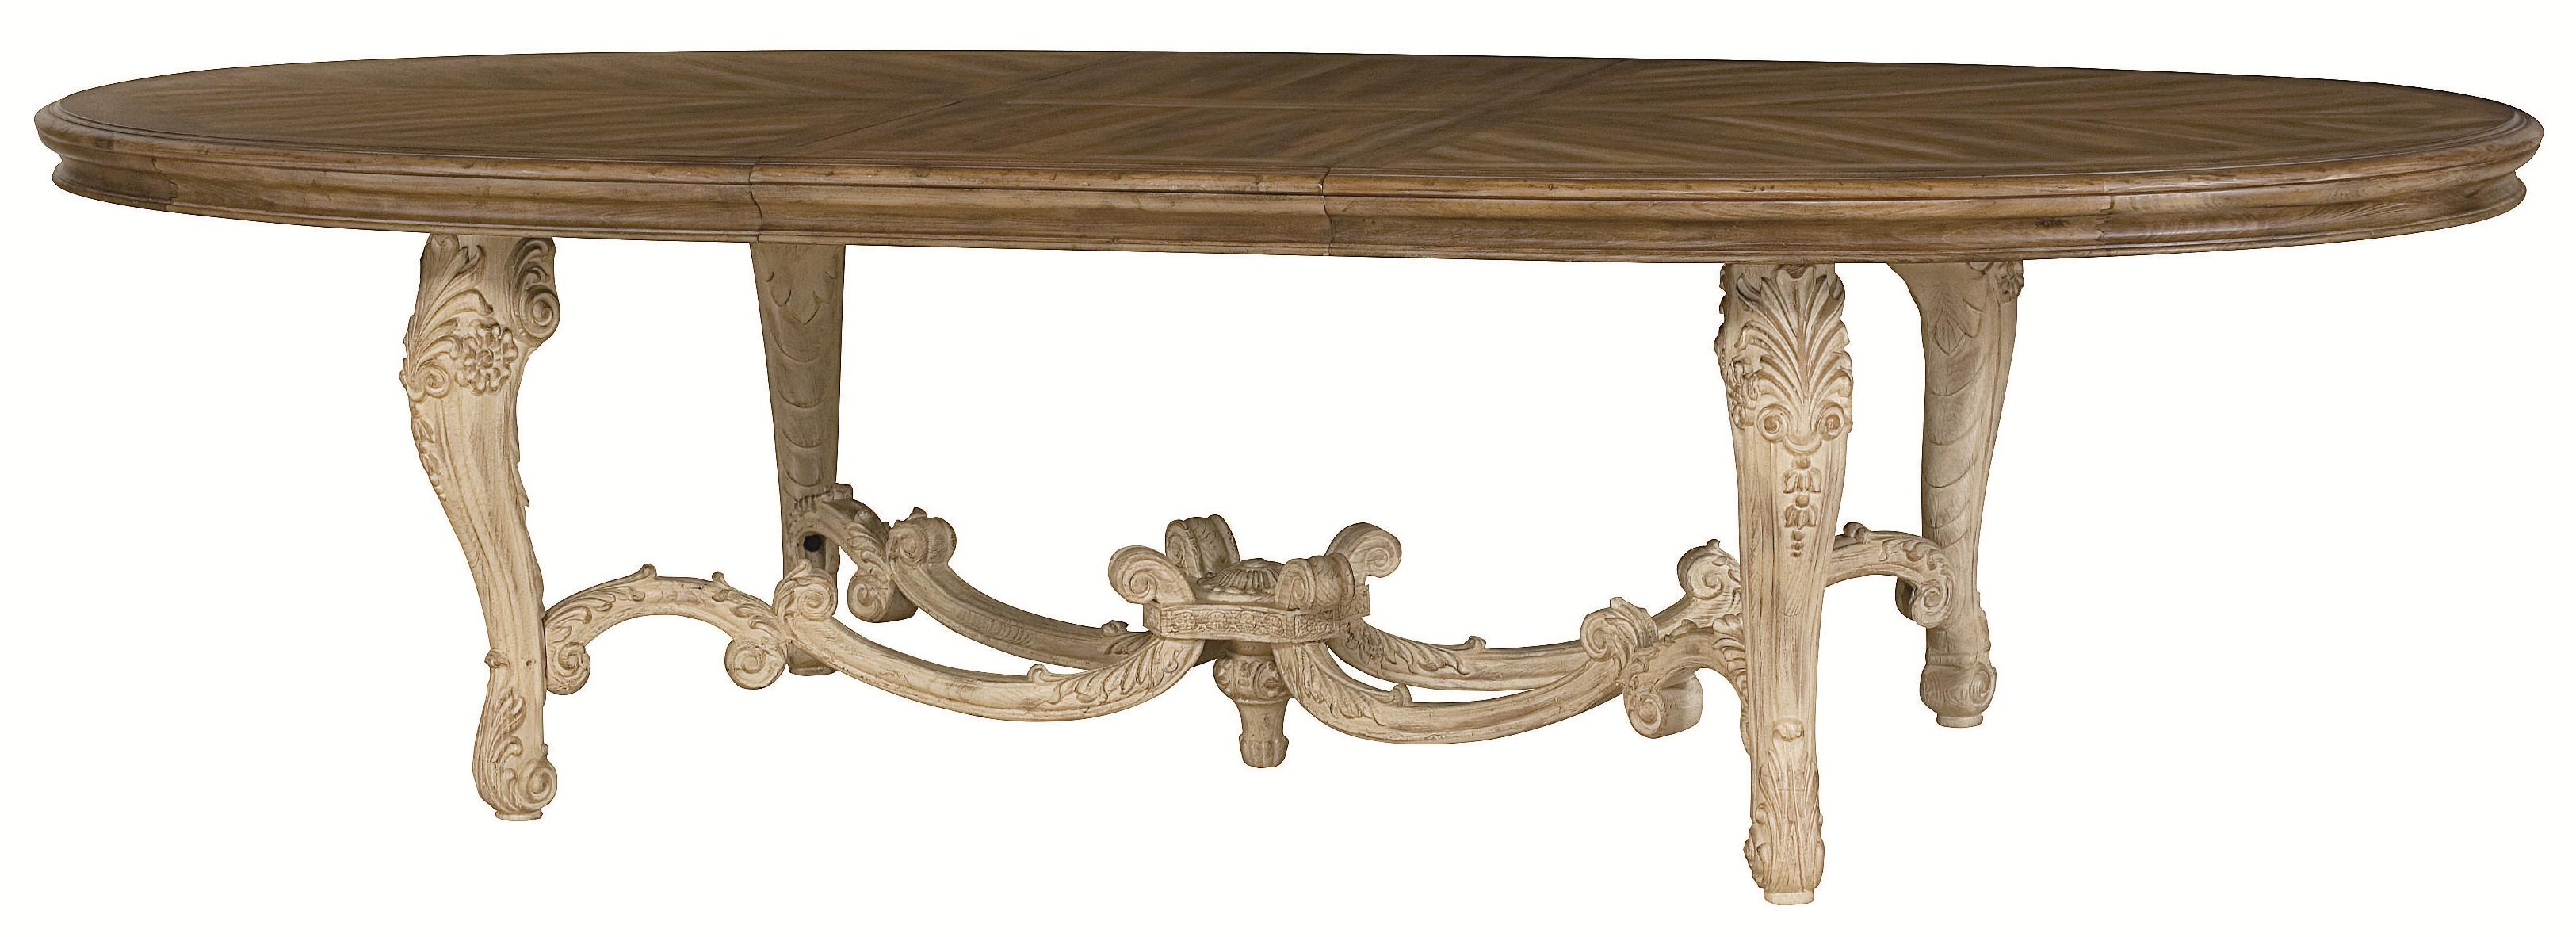 American Drew Jessica McClintock Home - The Boutique Collection Oval Dining Table - Item Number: 217-746R